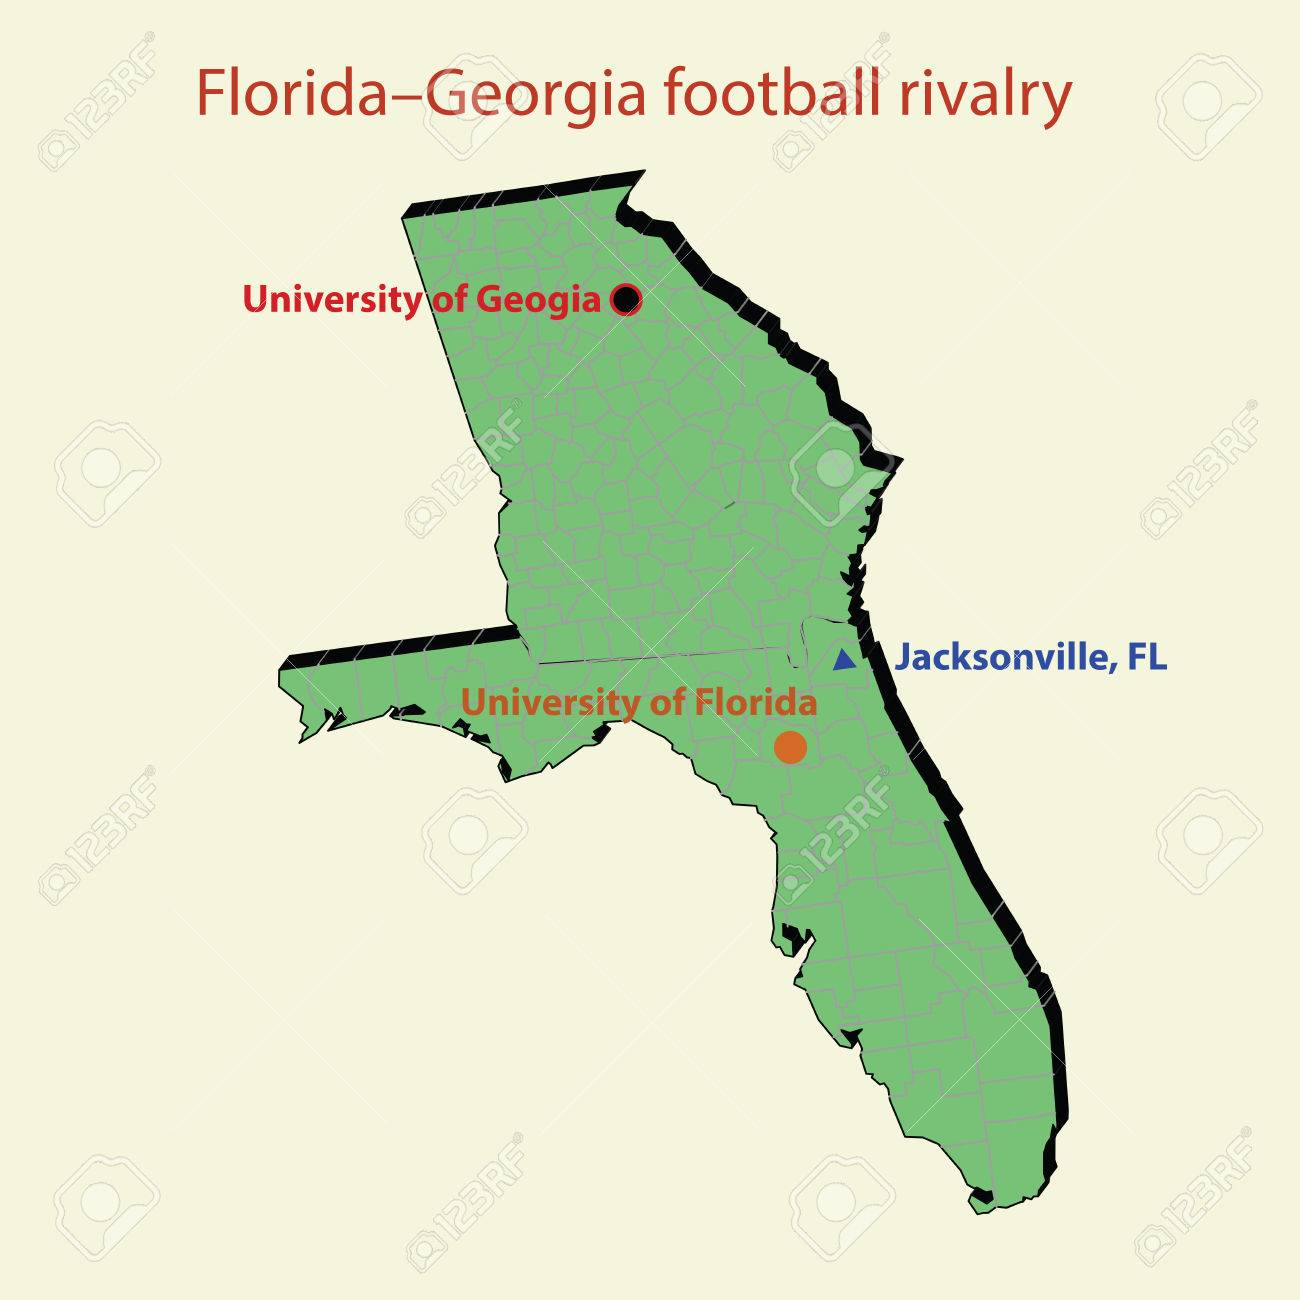 D Map Florida Georgia Football Rivalry In Jacksonville Royalty - Florida to georgia map